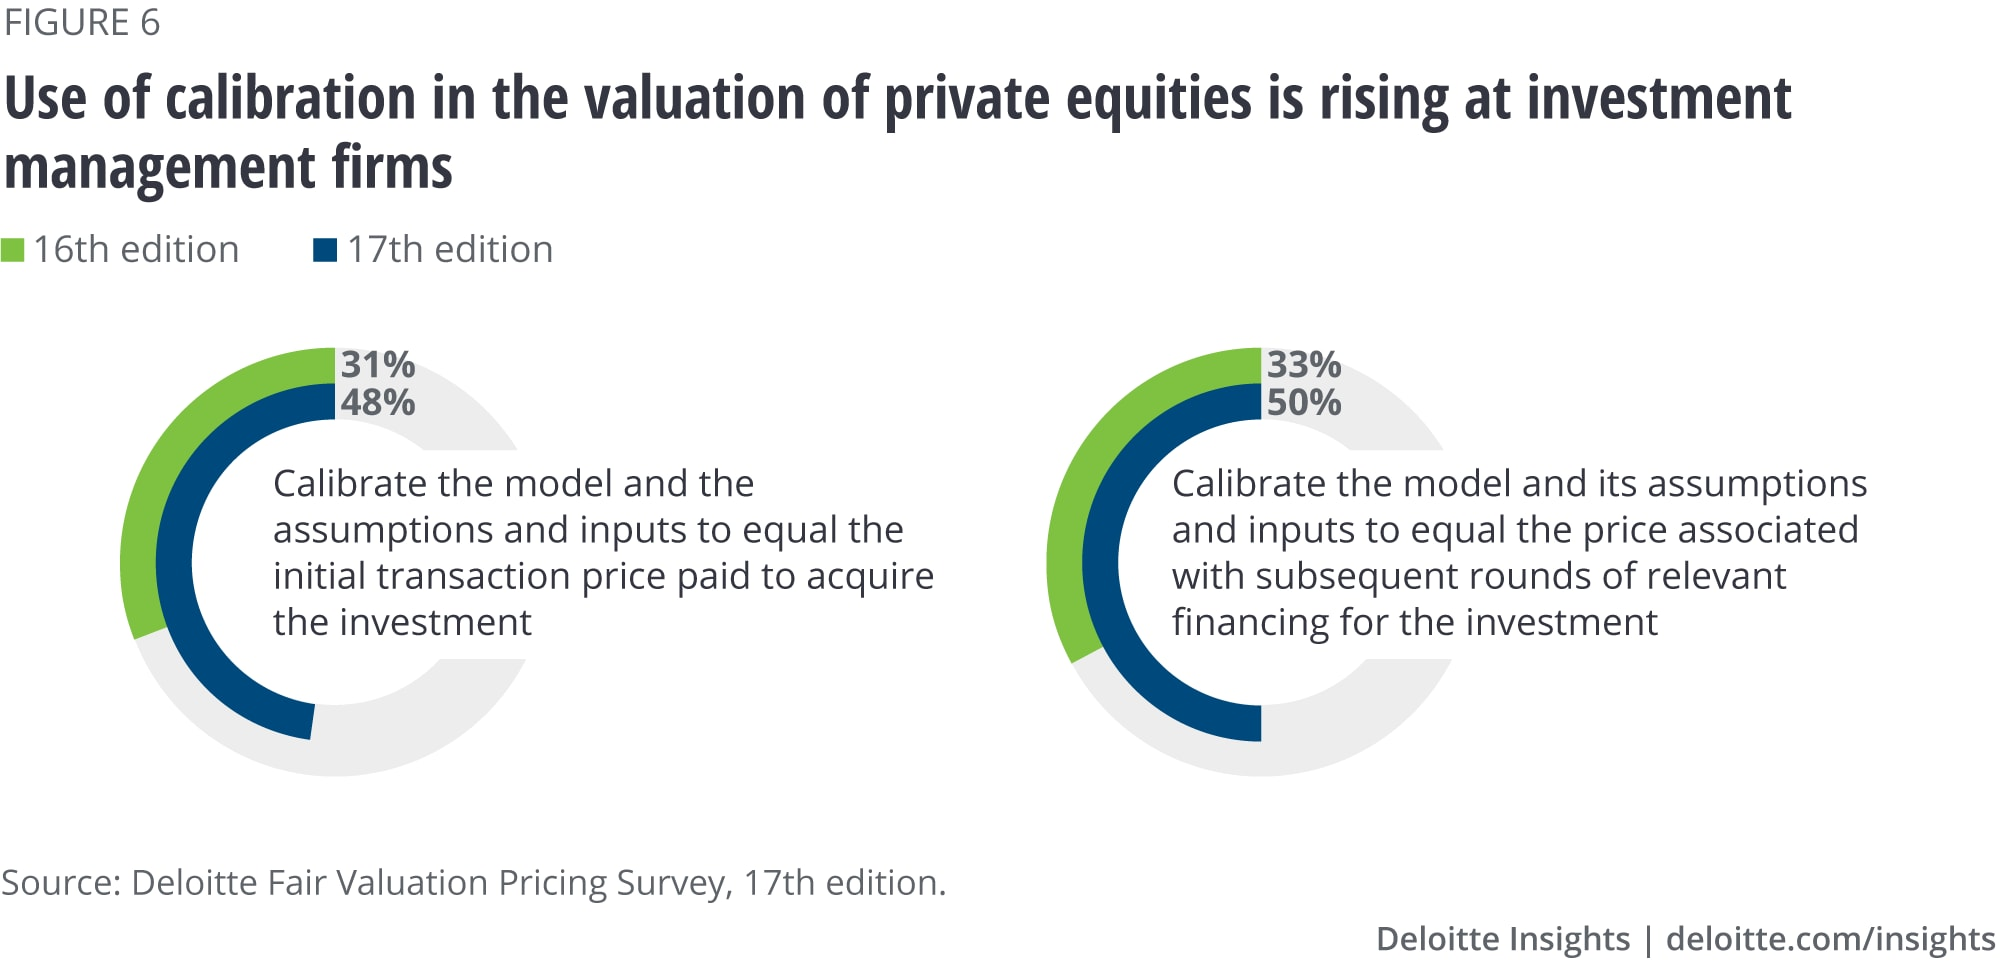 Using calibration in the valuation of private equities is rising at investment management firms